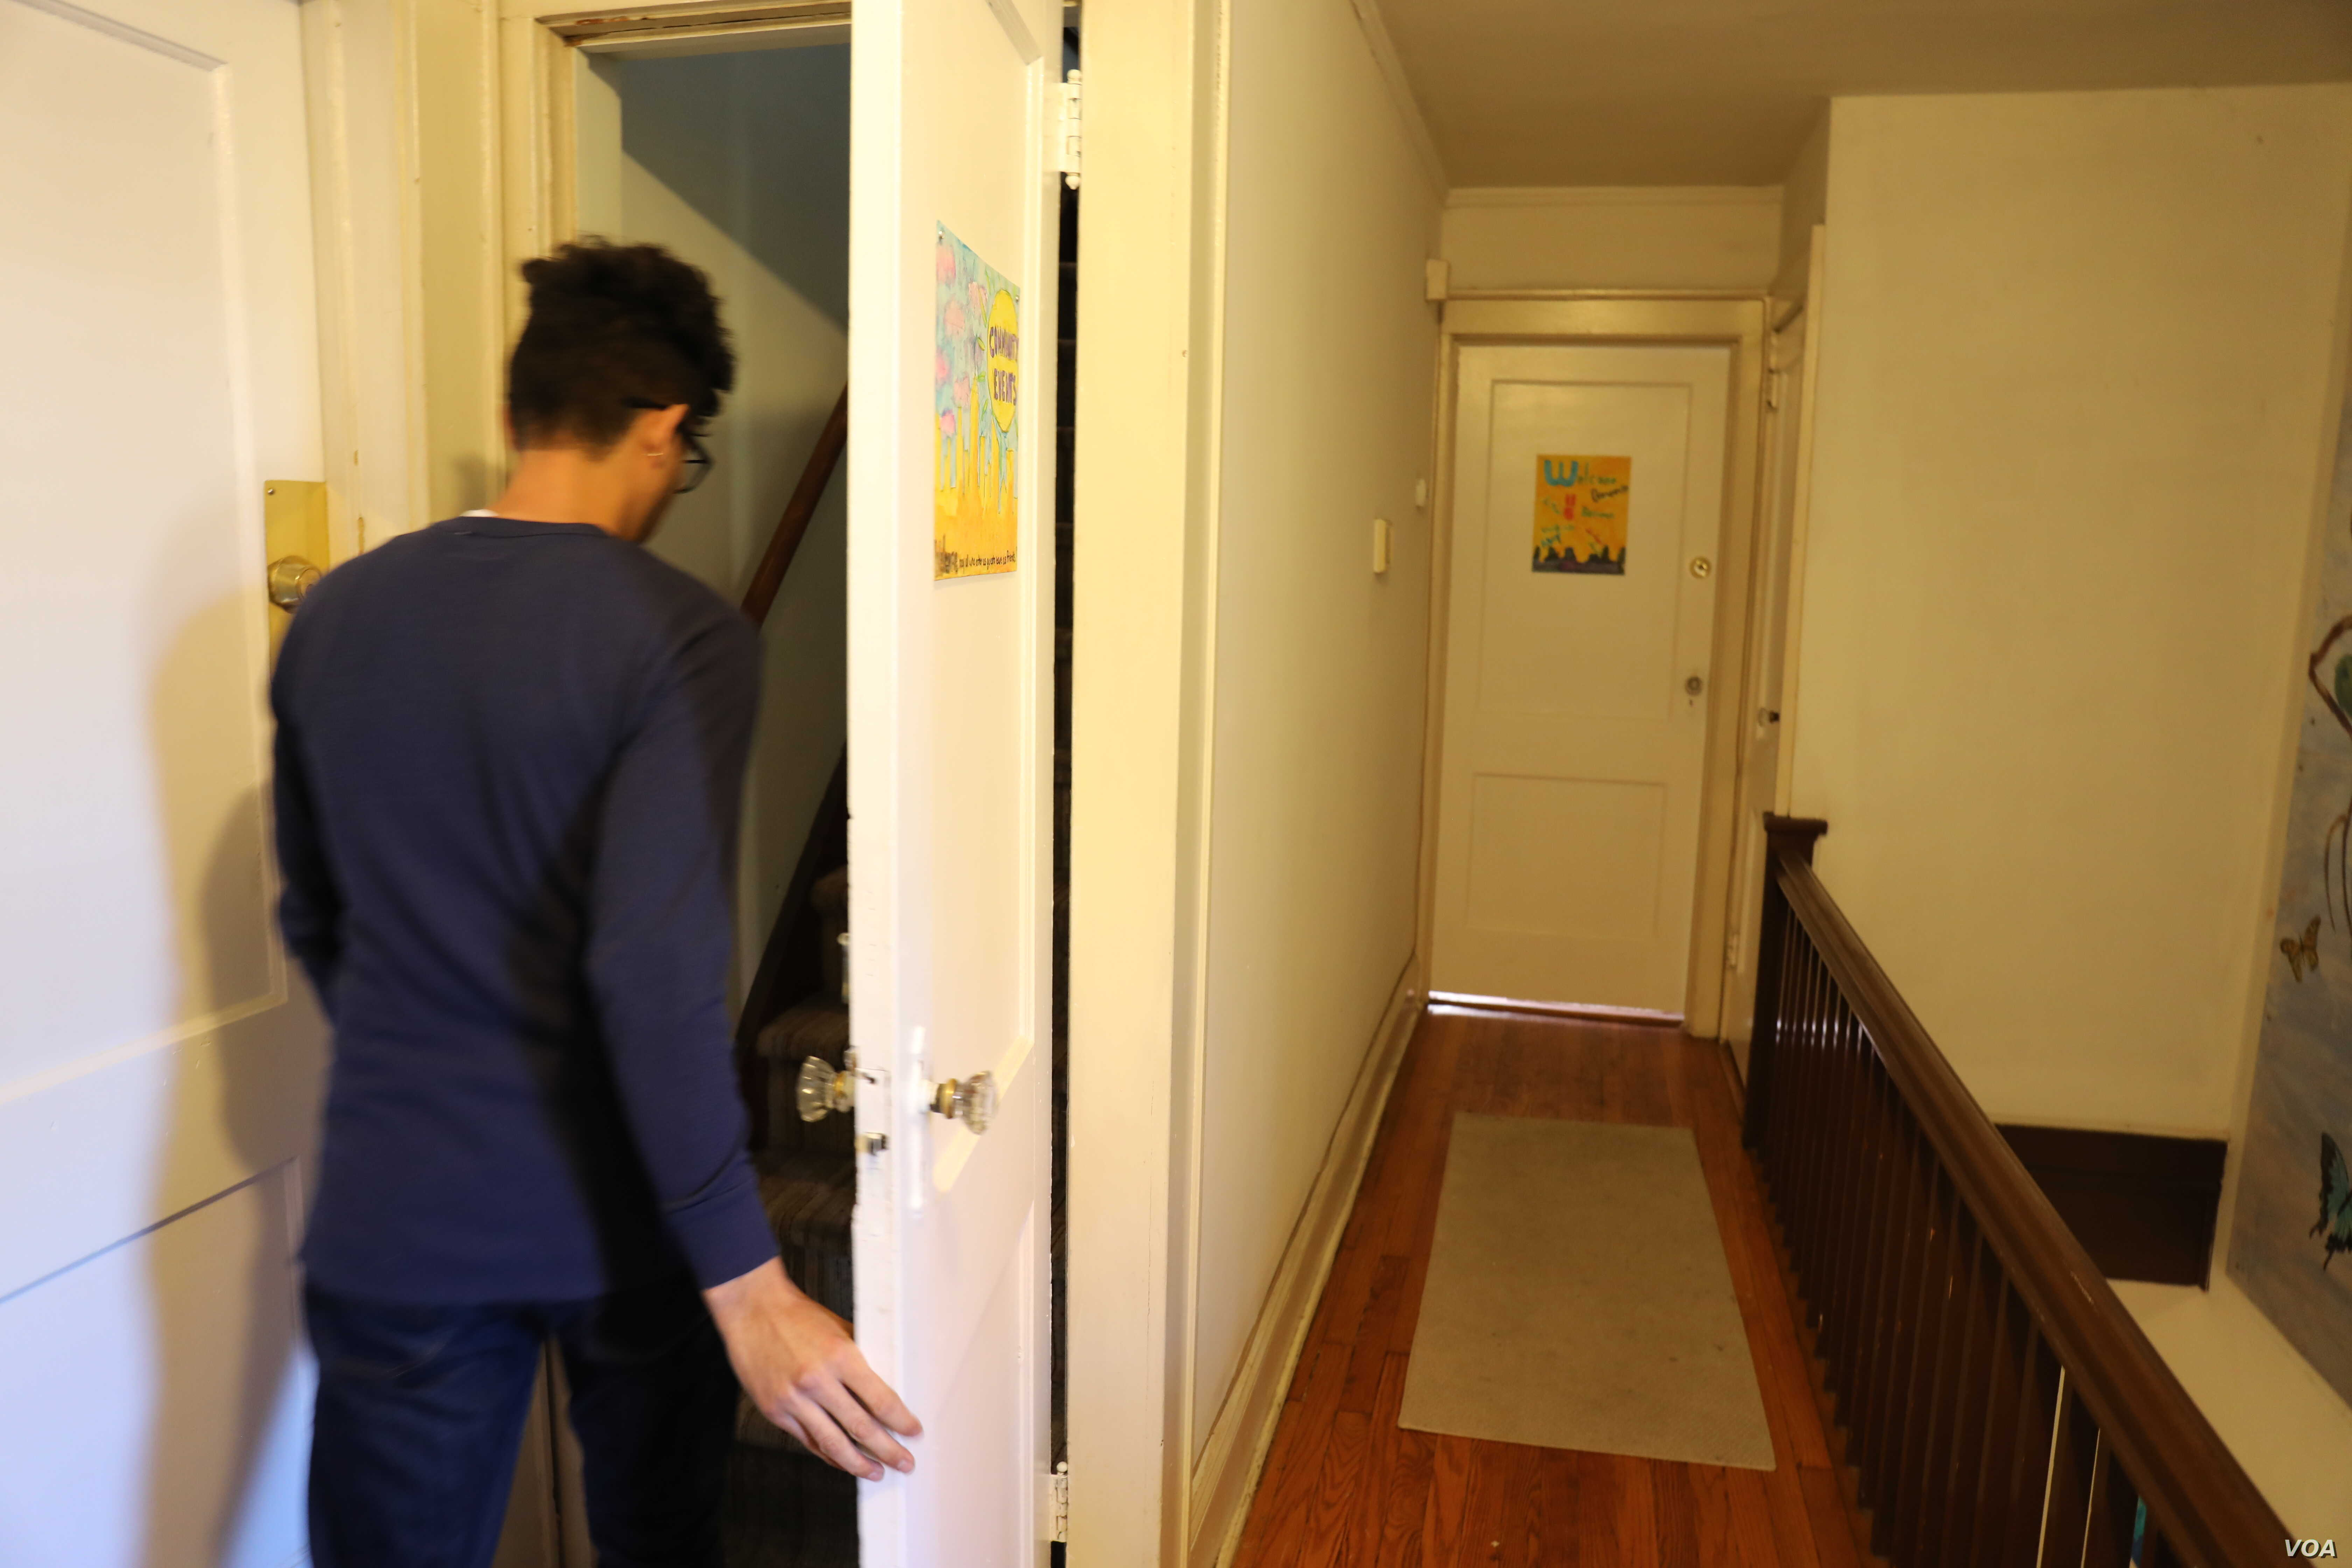 Jose, who did not want to use his real name, lives in halfway house in New Jersey. The place is a temporary home for asylum seekers released from immigration detention. About five immigrants live in the house while they rebuild their lives and wait f...